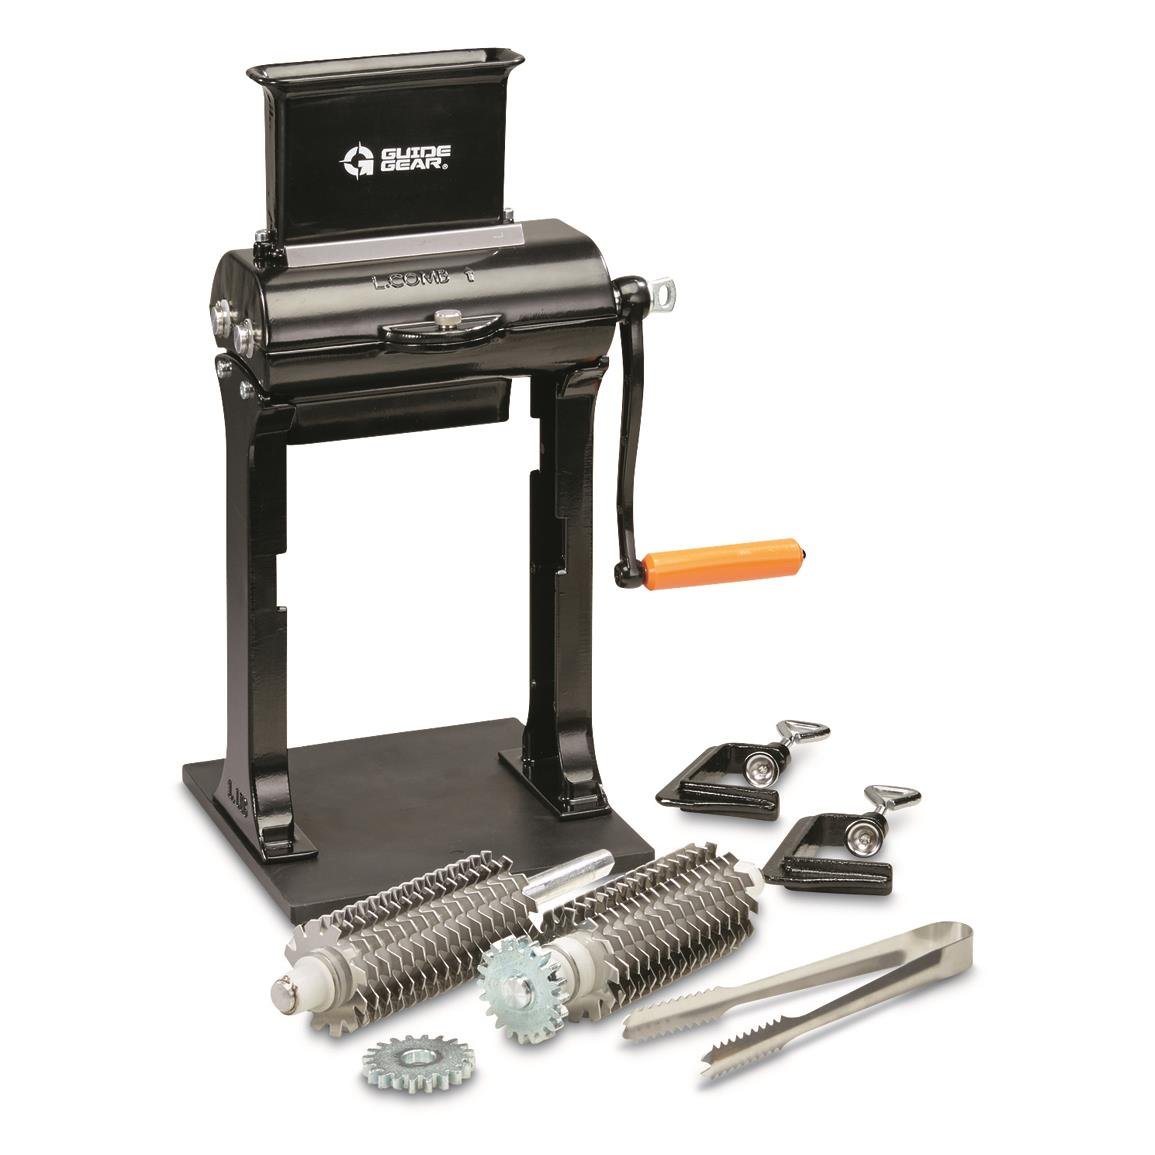 Includes two sets of blades, tongs and 2 C-clamps for attaching to table/countertop